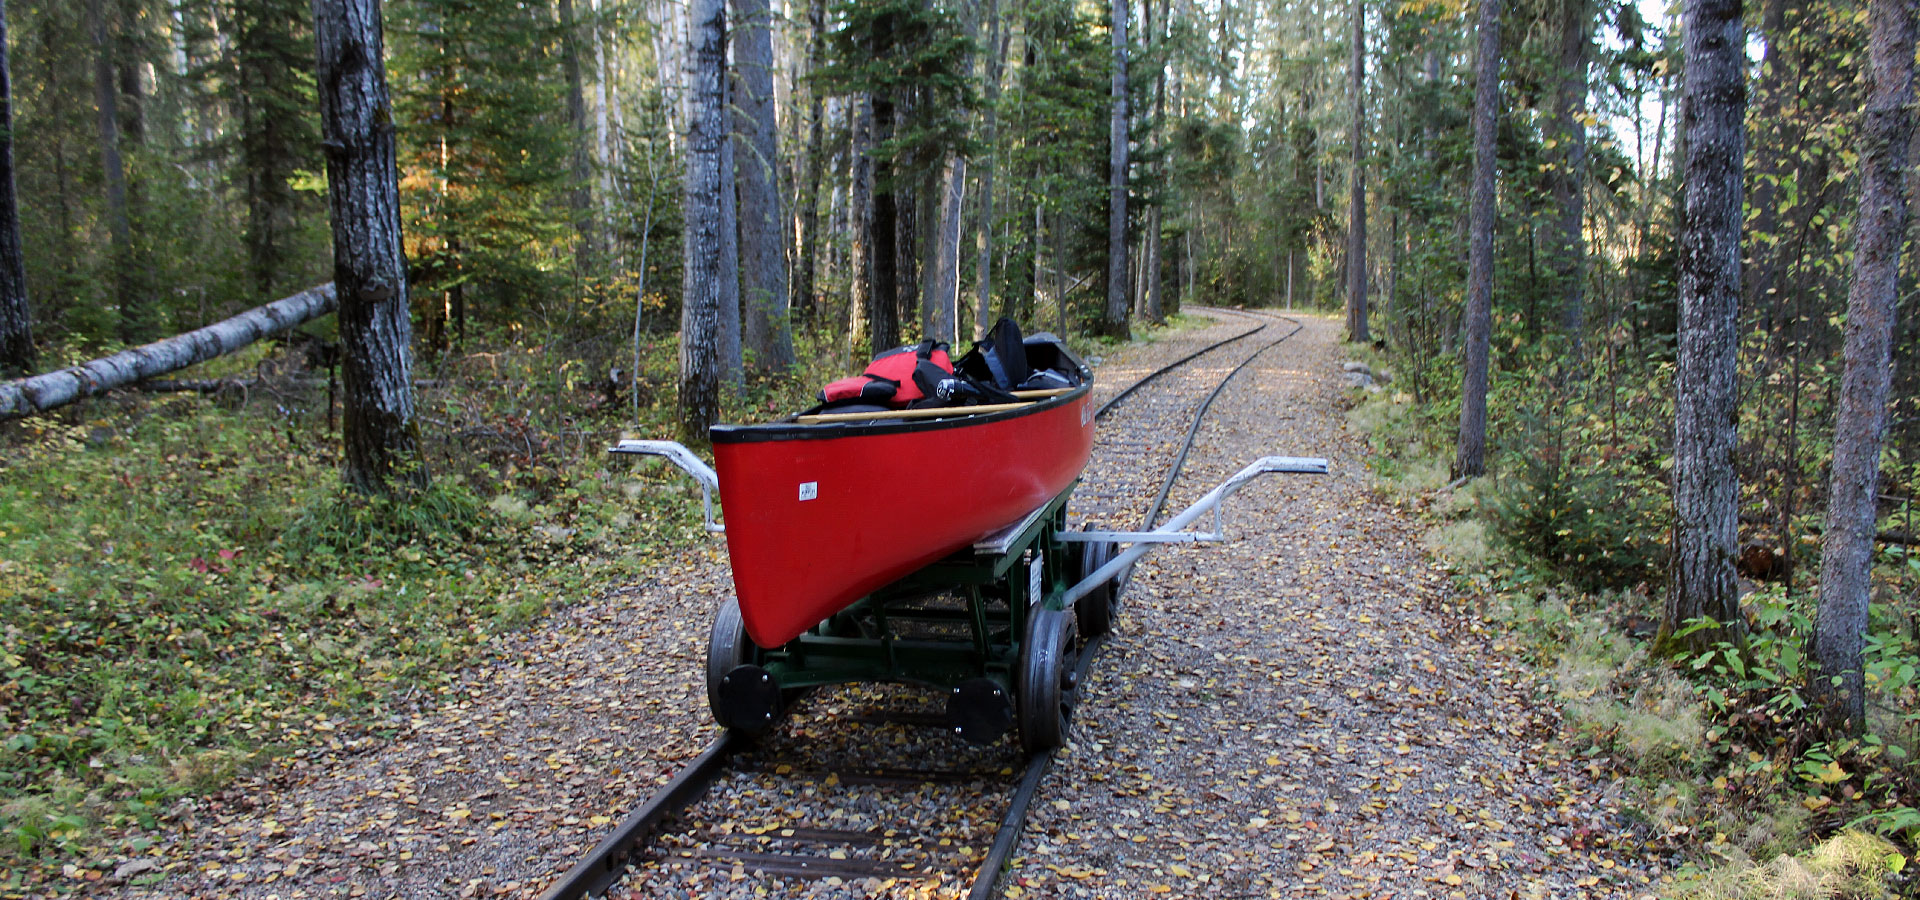 Railway portage in Prince Albert National Park